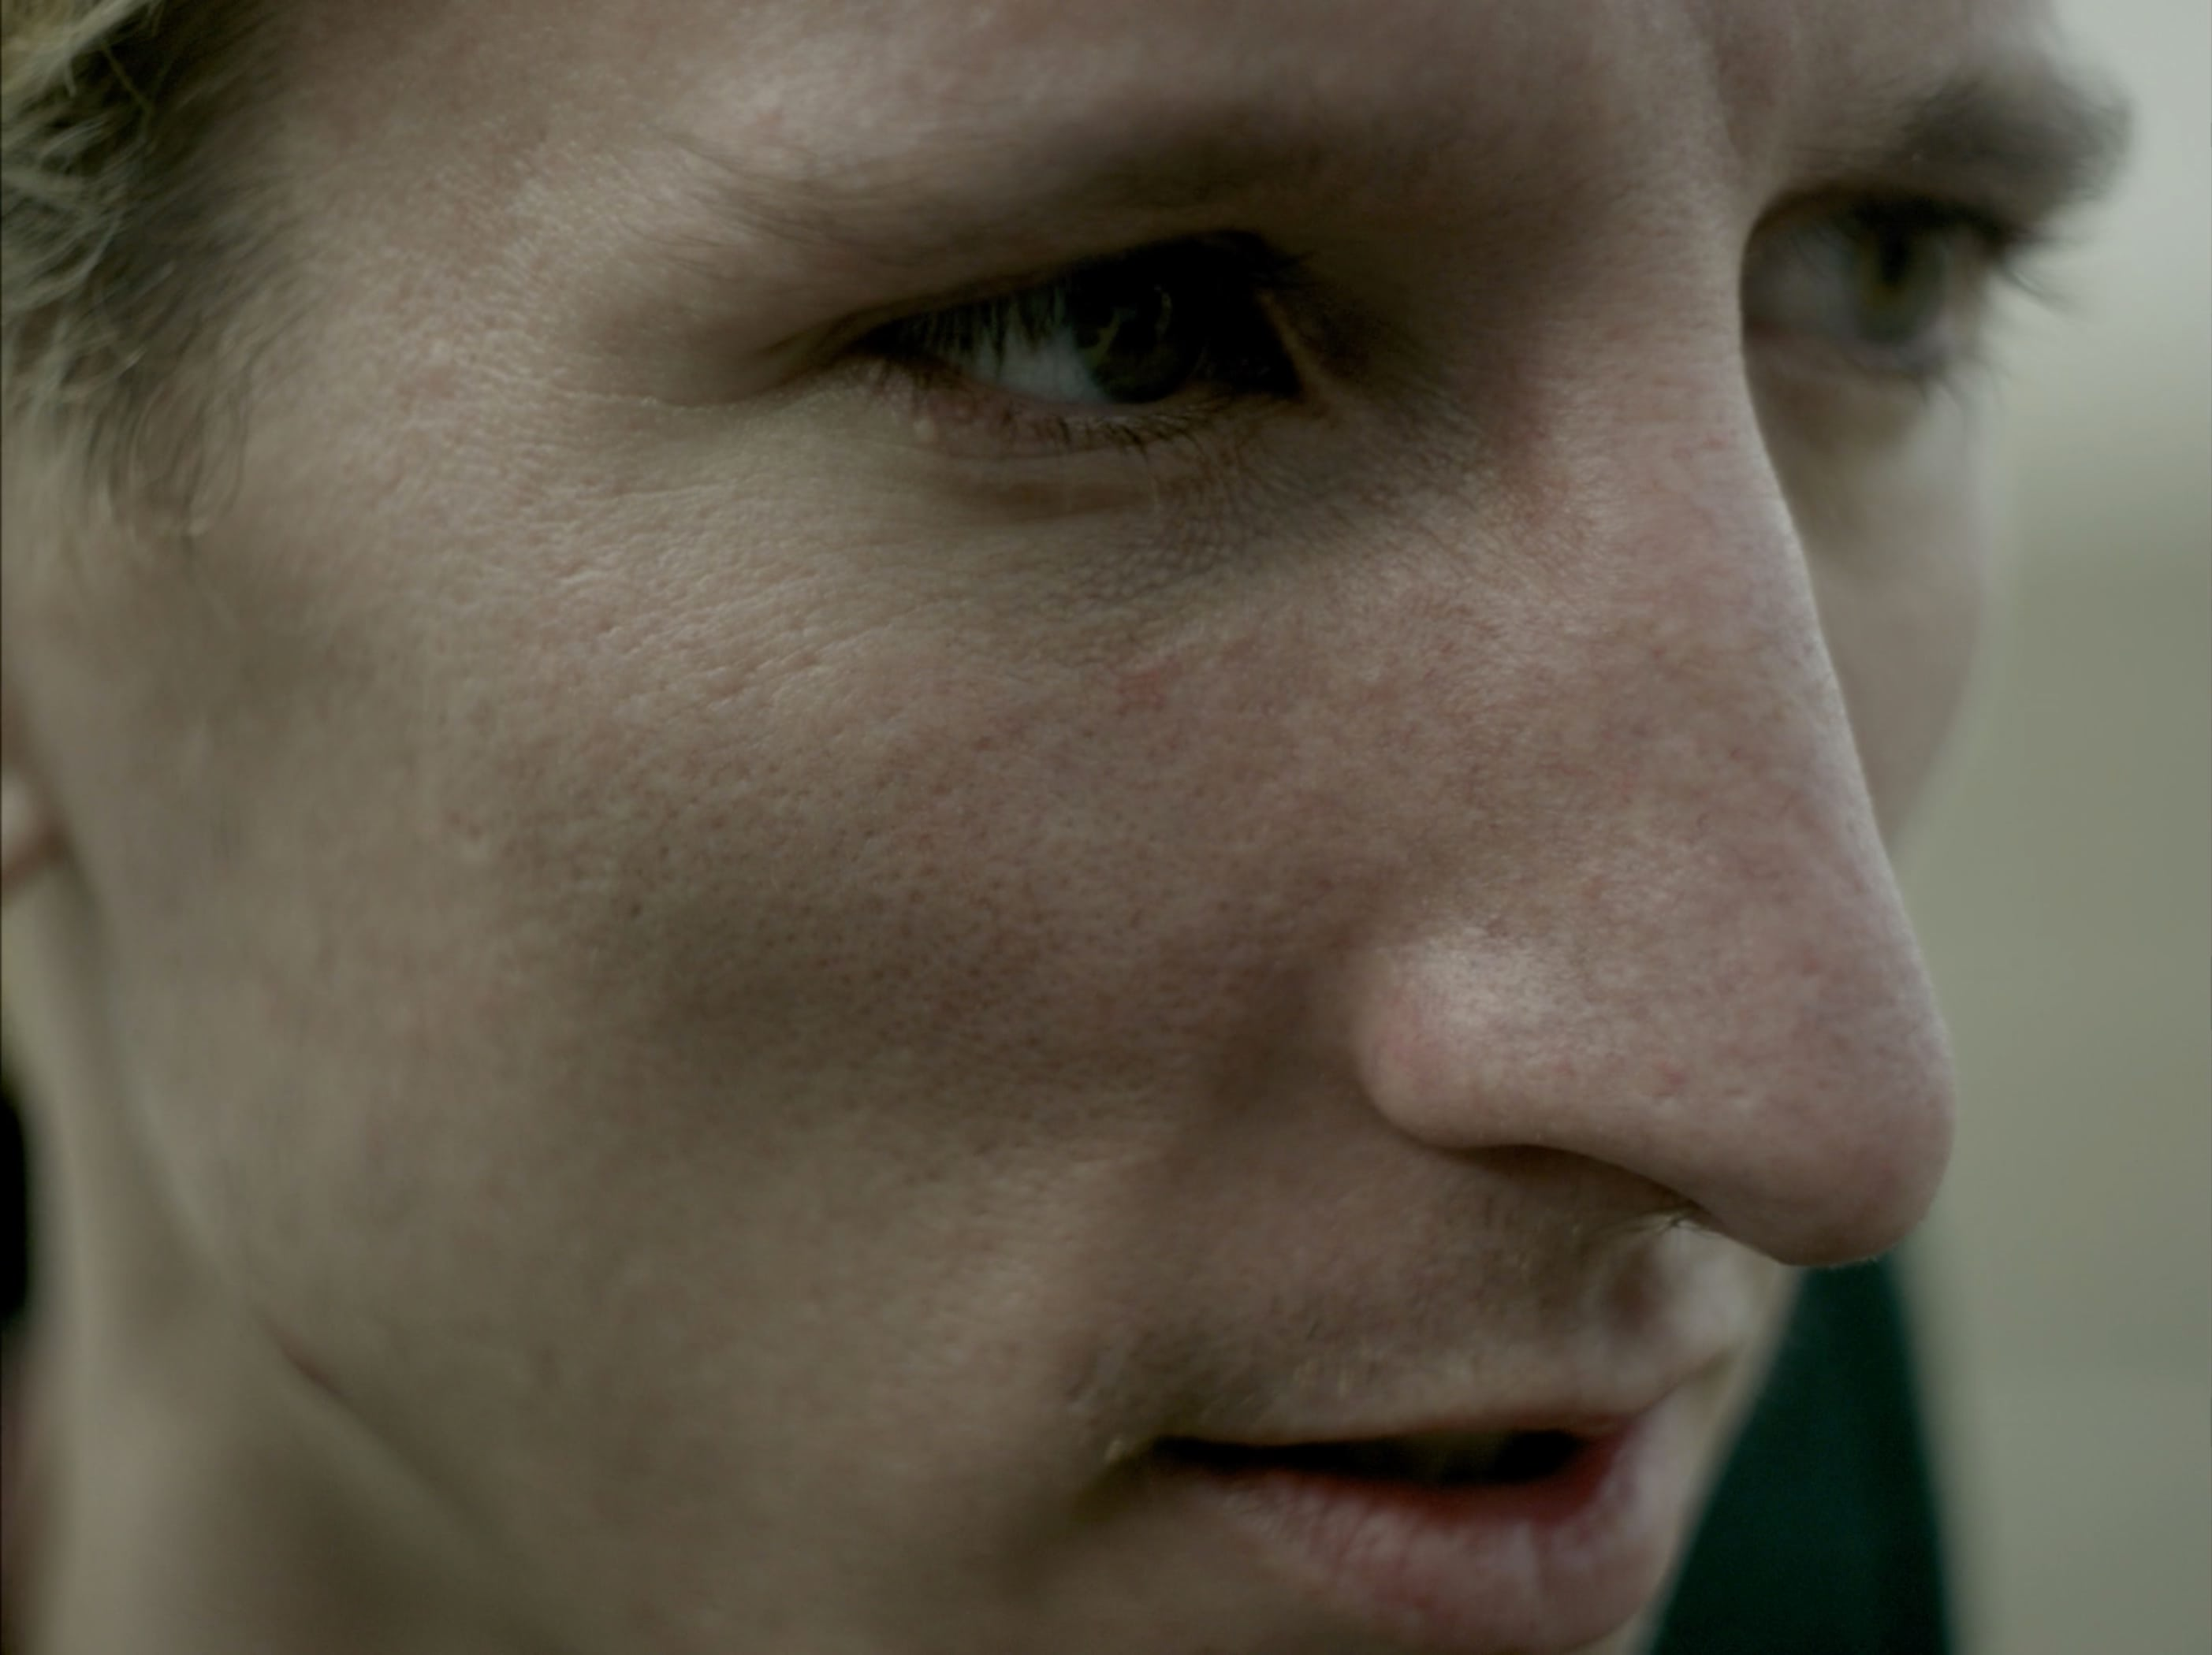 Close up of a young man outside looking off screen.